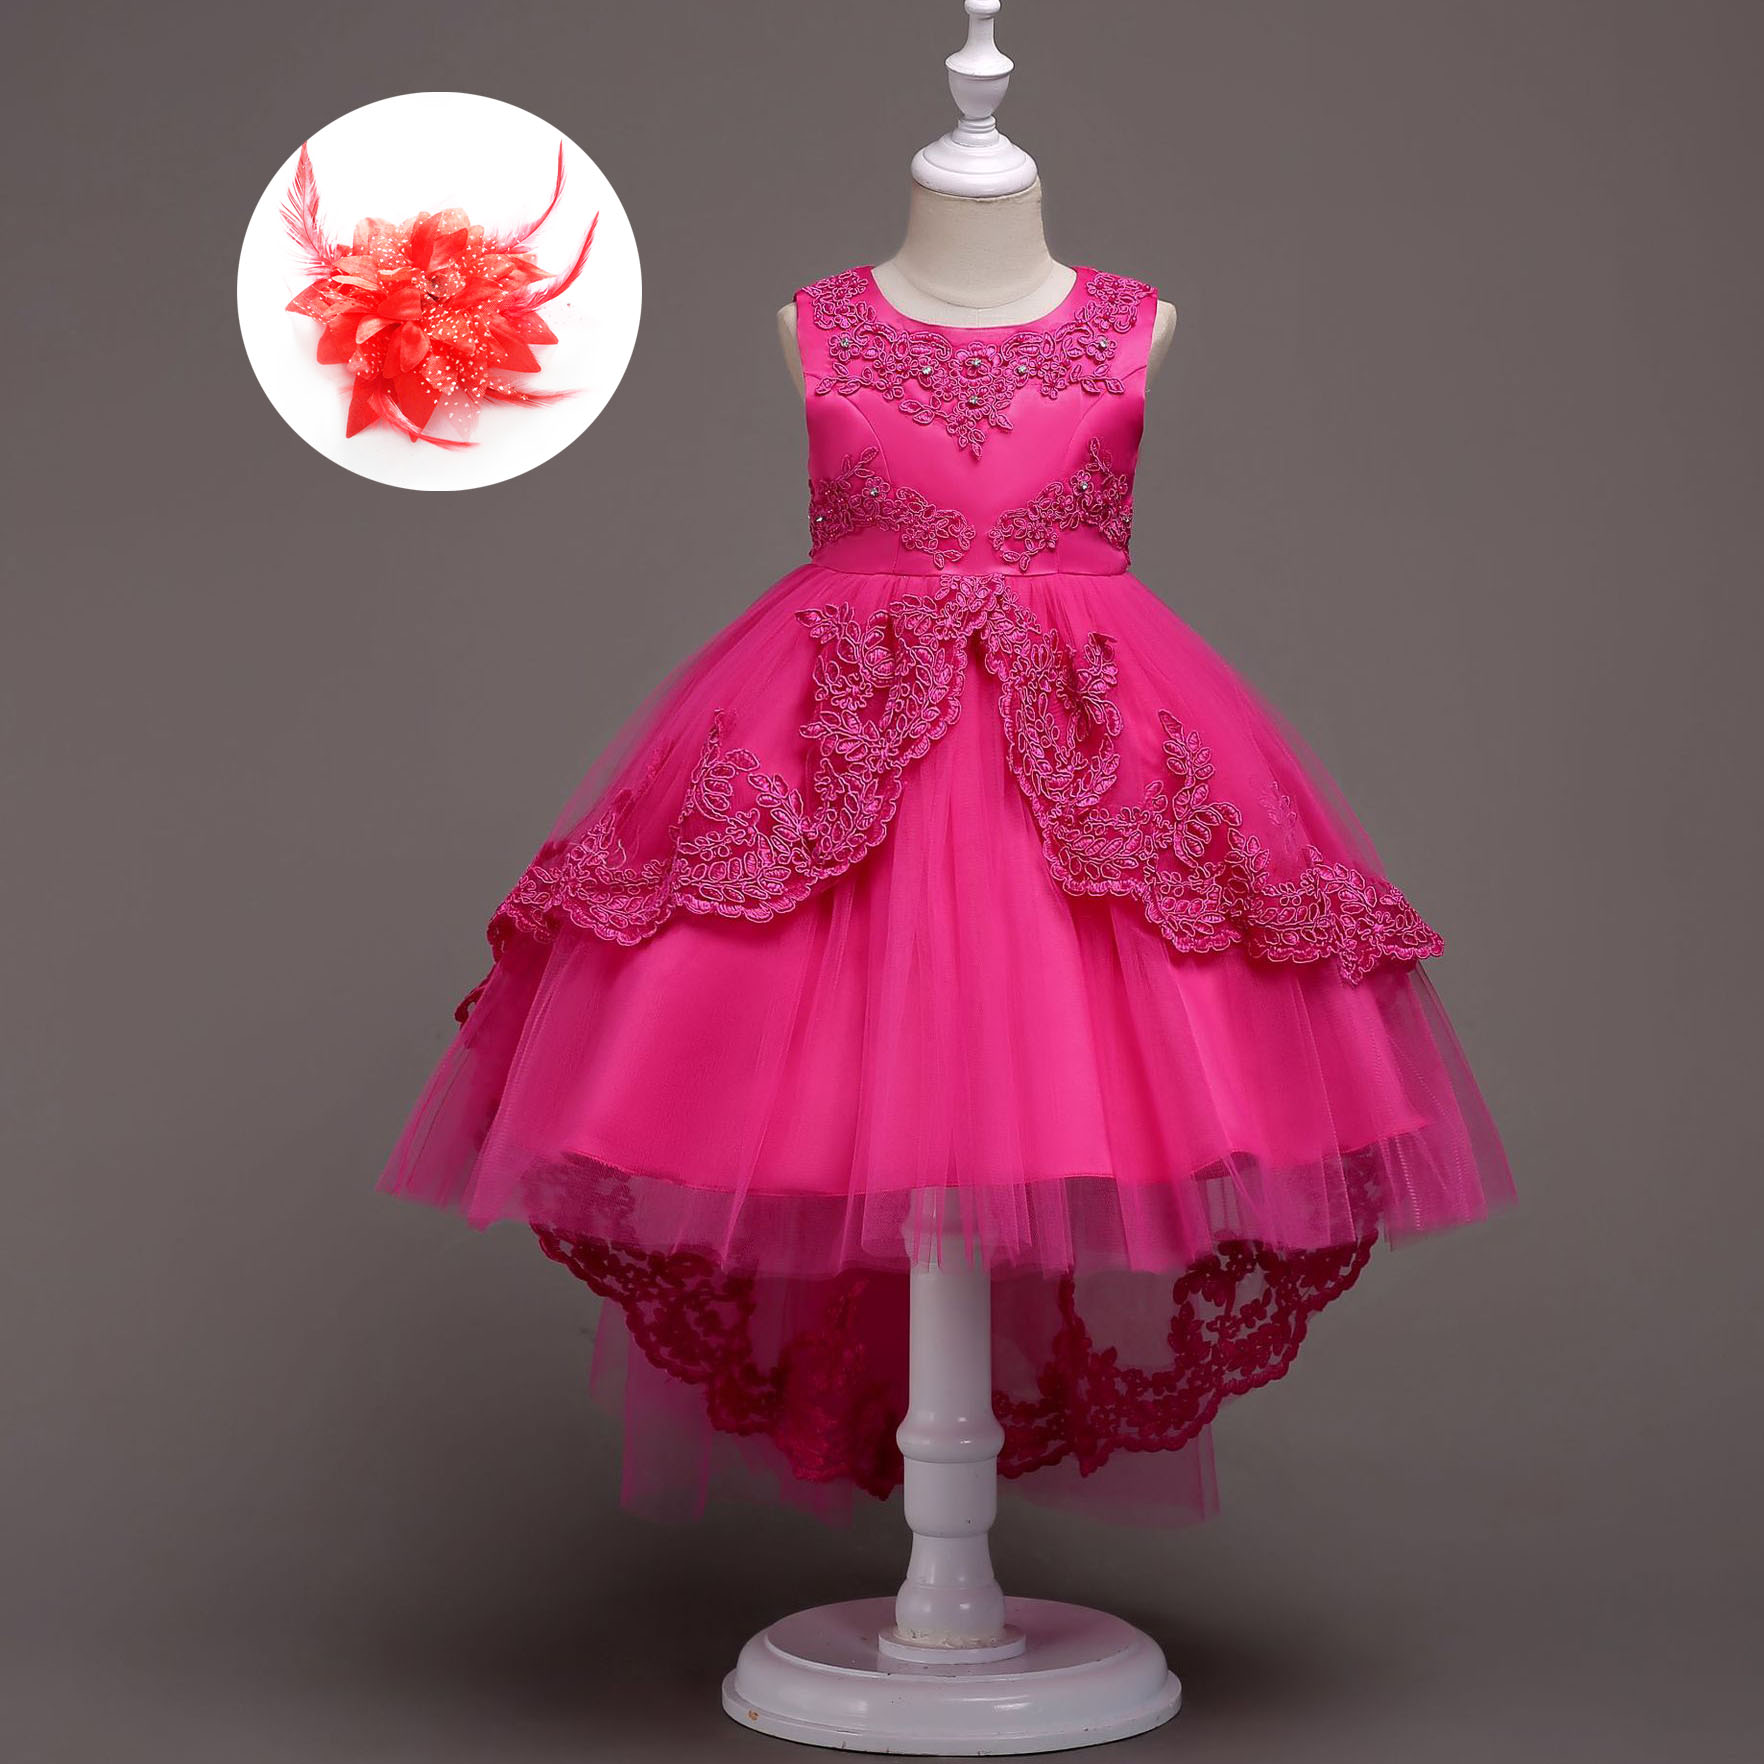 Us 16 08 33 Off Fashion Kids Tail Prom Dress Light Blue Fuchsia Pink Red White Wedding Party Gown 3 To 14 Year Old Formal Dresses In